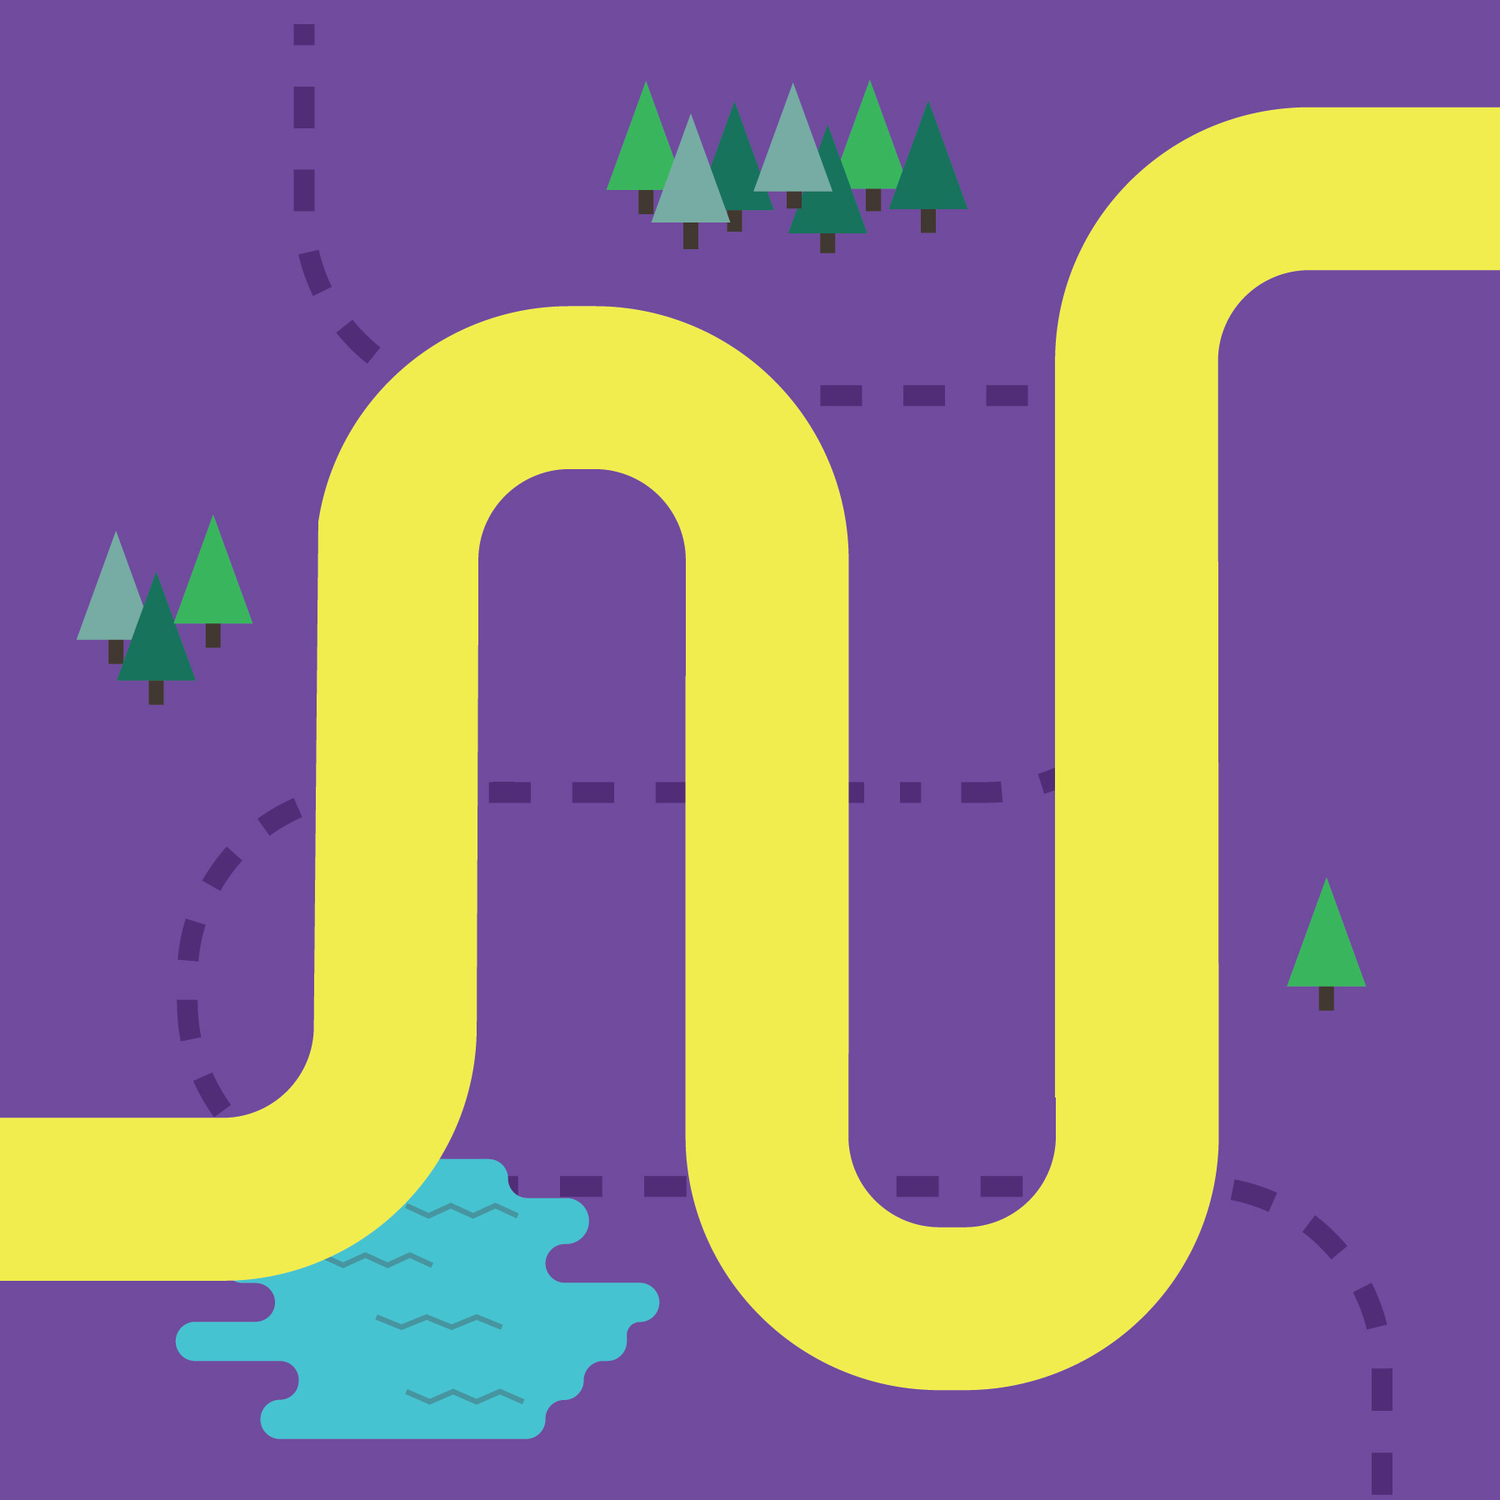 Digital cartoon map, yellow path over purple ground, small trees & water blob, dotted line off path.